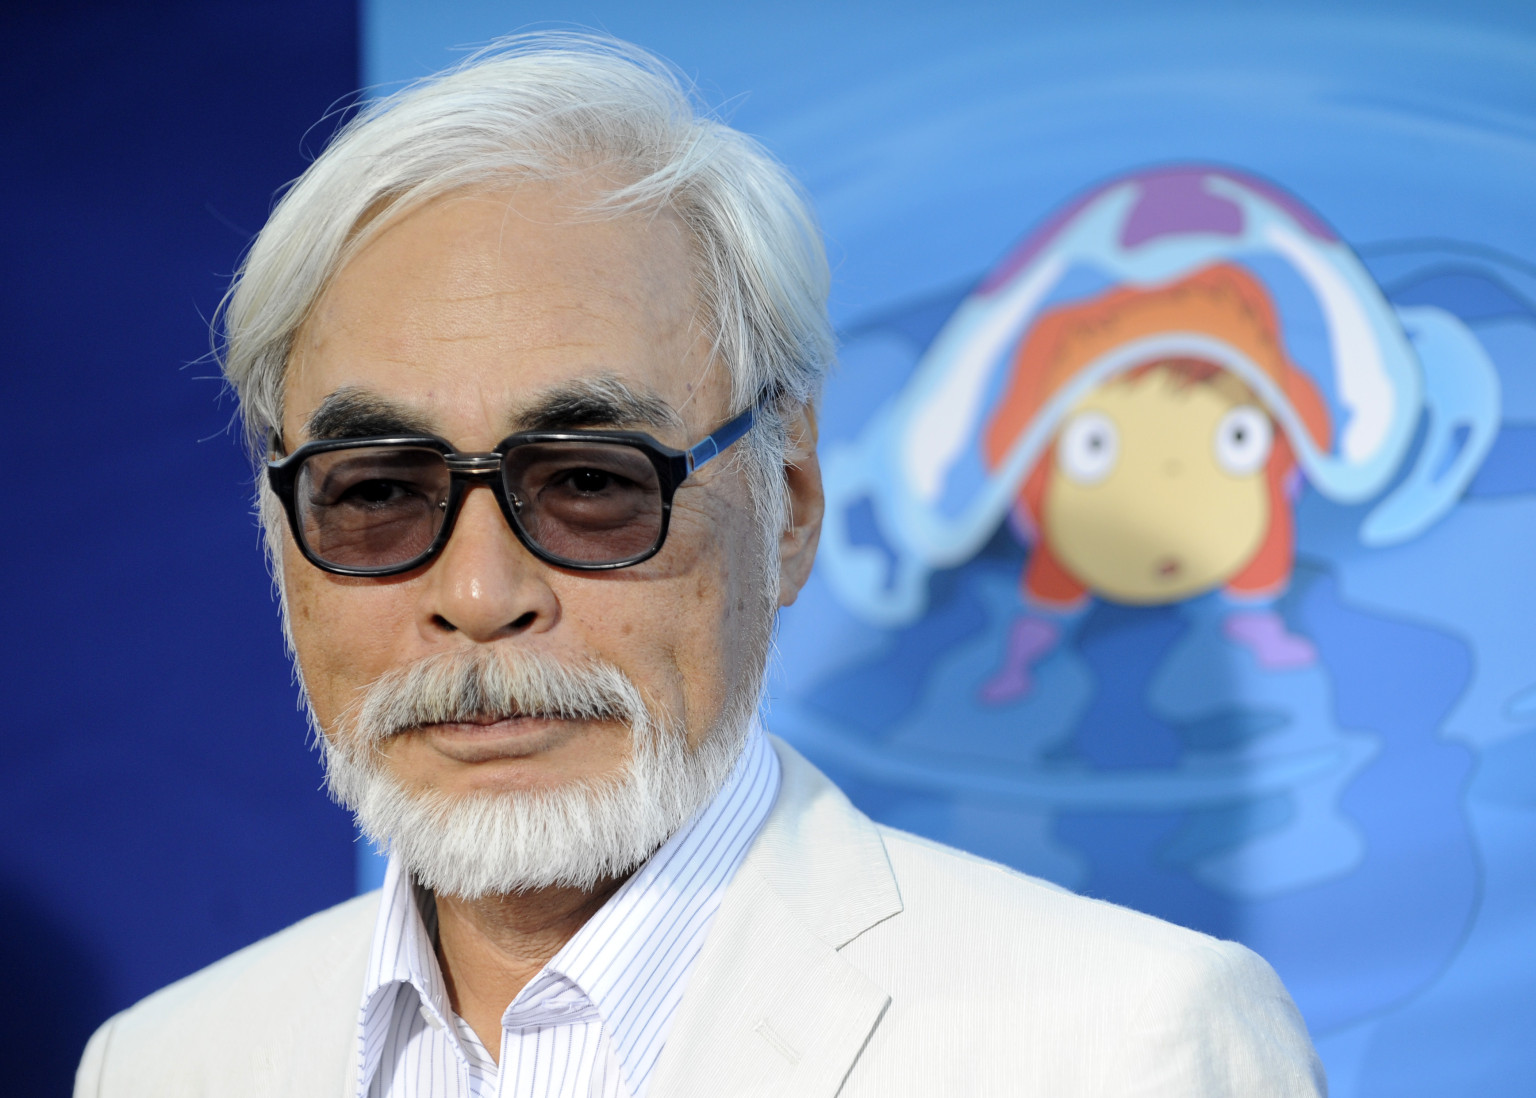 """Hayao Miyazaki of Japan, director of the animated film """"Ponyo,"""" poses at a special screening of the film in Los Angeles, Monday, July 27, 2009. (AP Photo/Chris Pizzello)"""